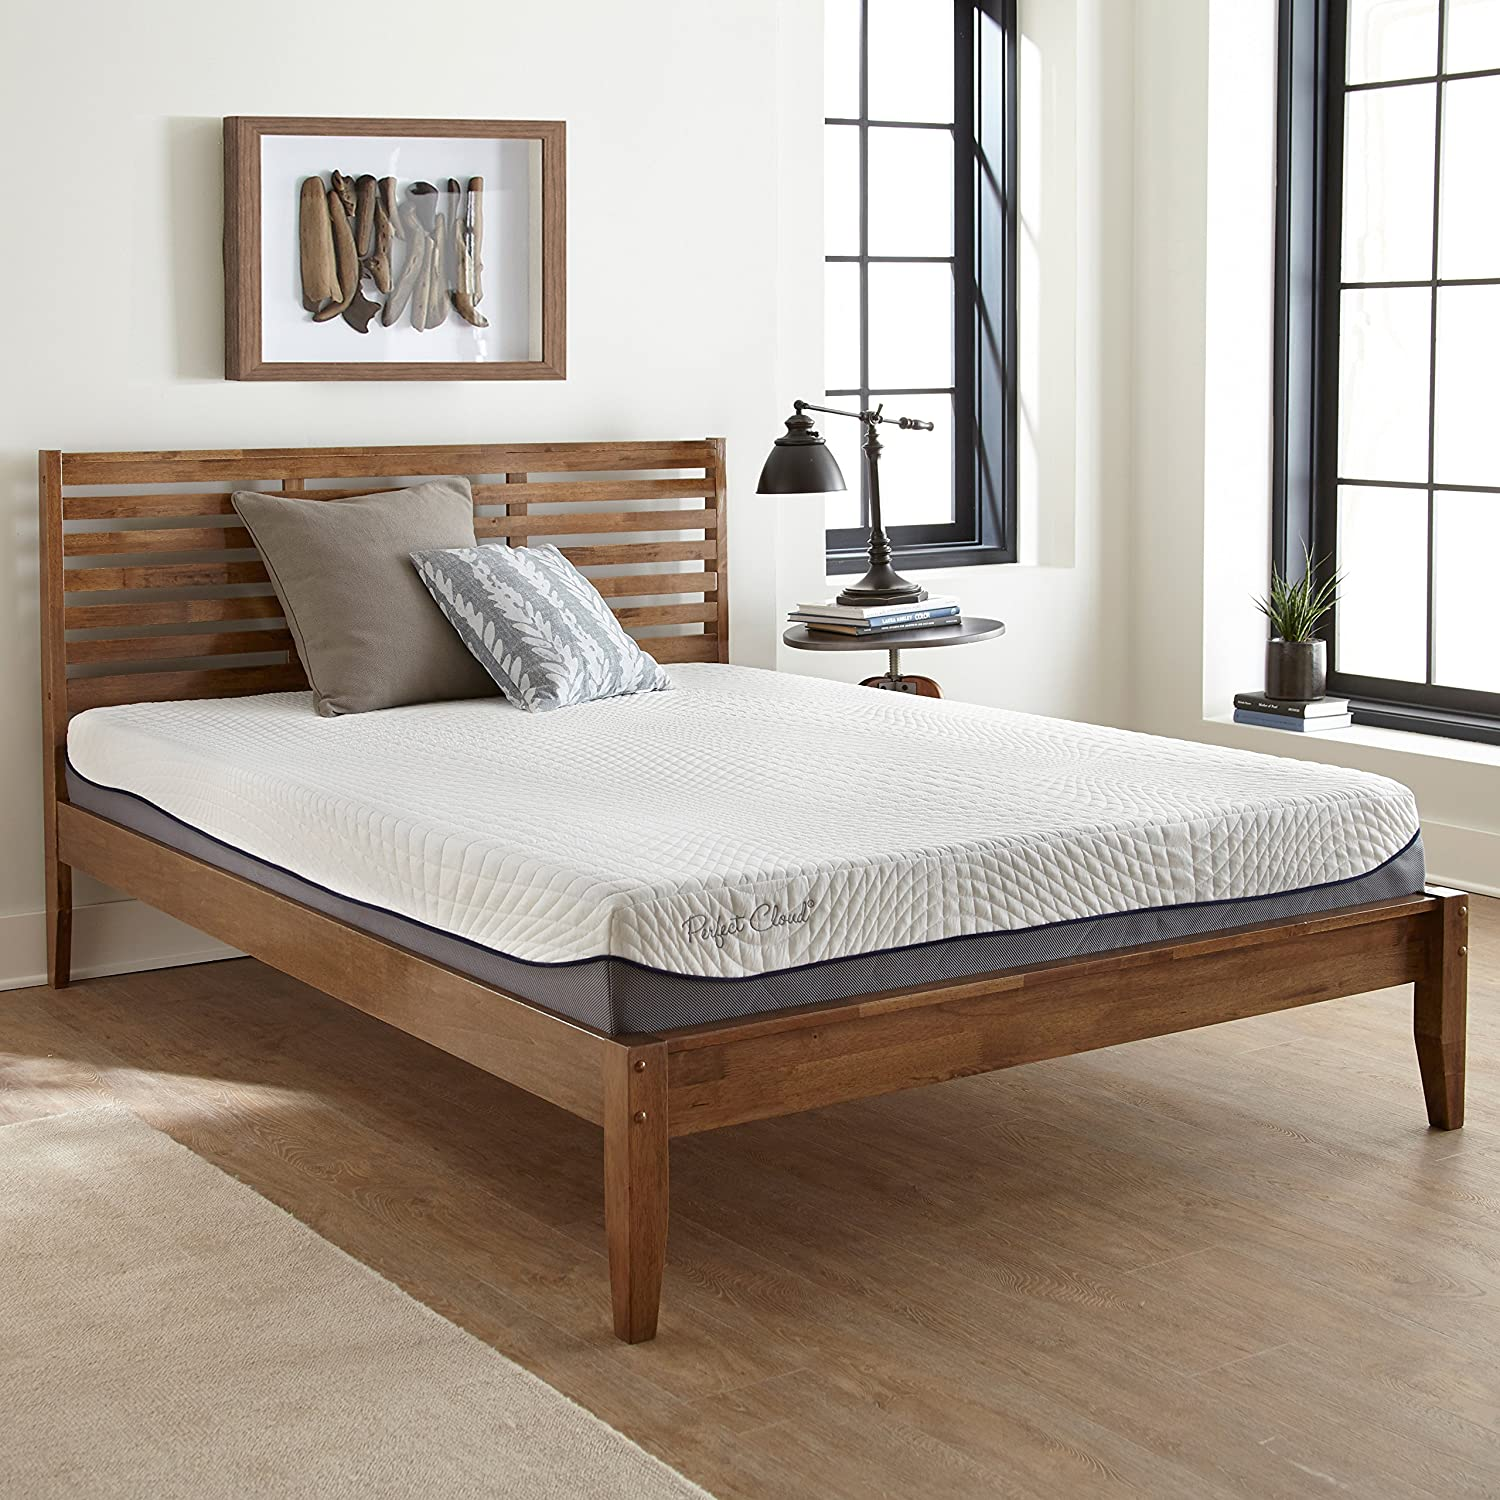 Tempurpedic Mattress Cover - Why You Should Go For It?